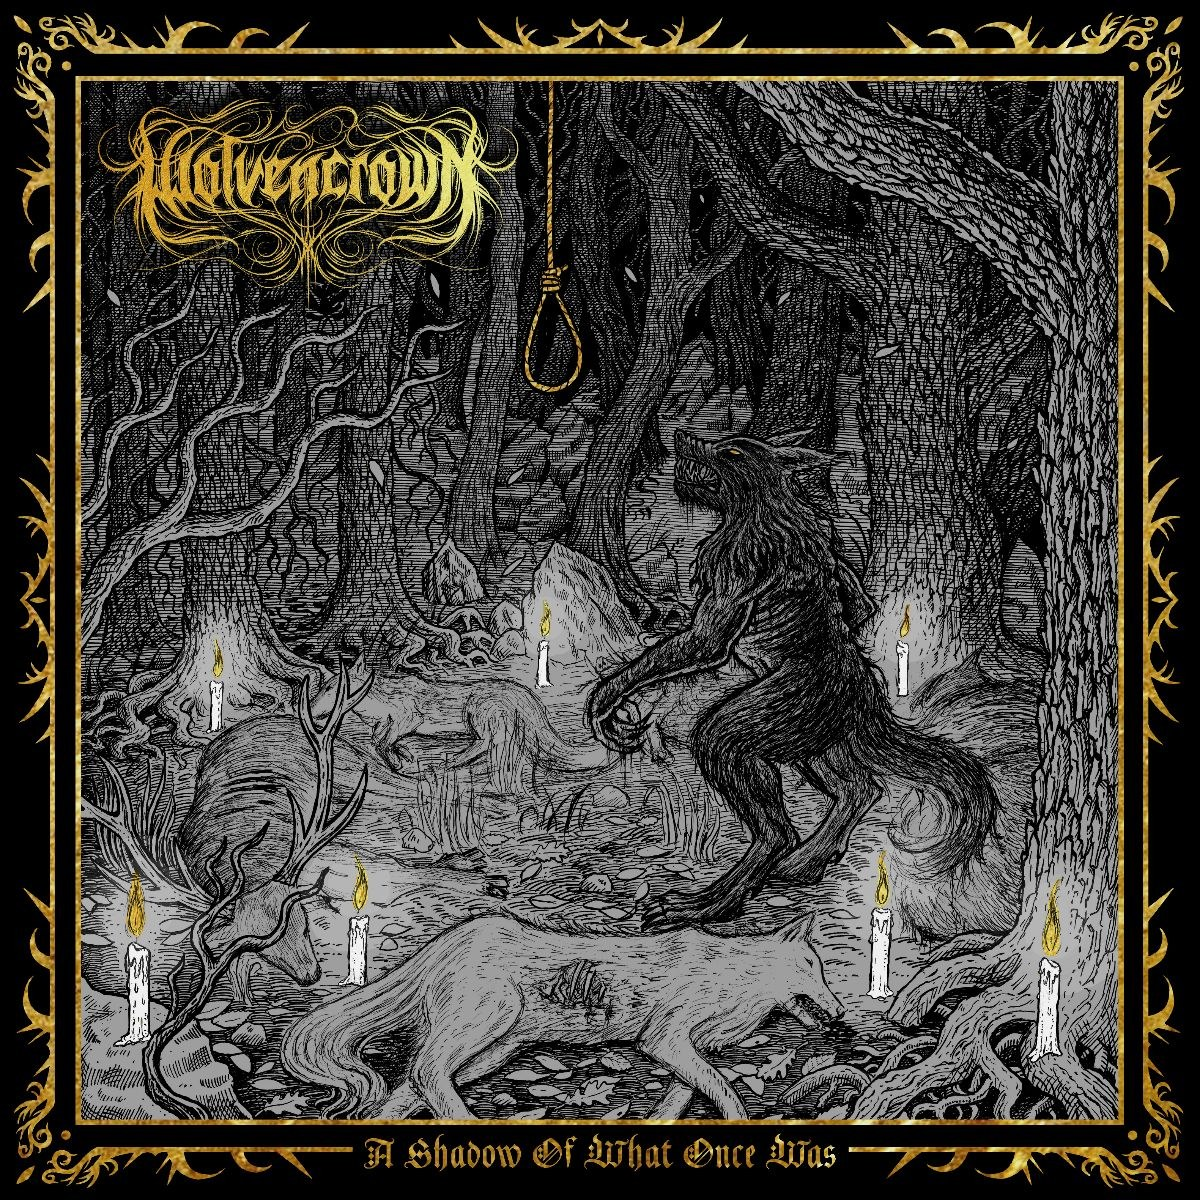 Wolvencrown - A Shadow of What Once Was